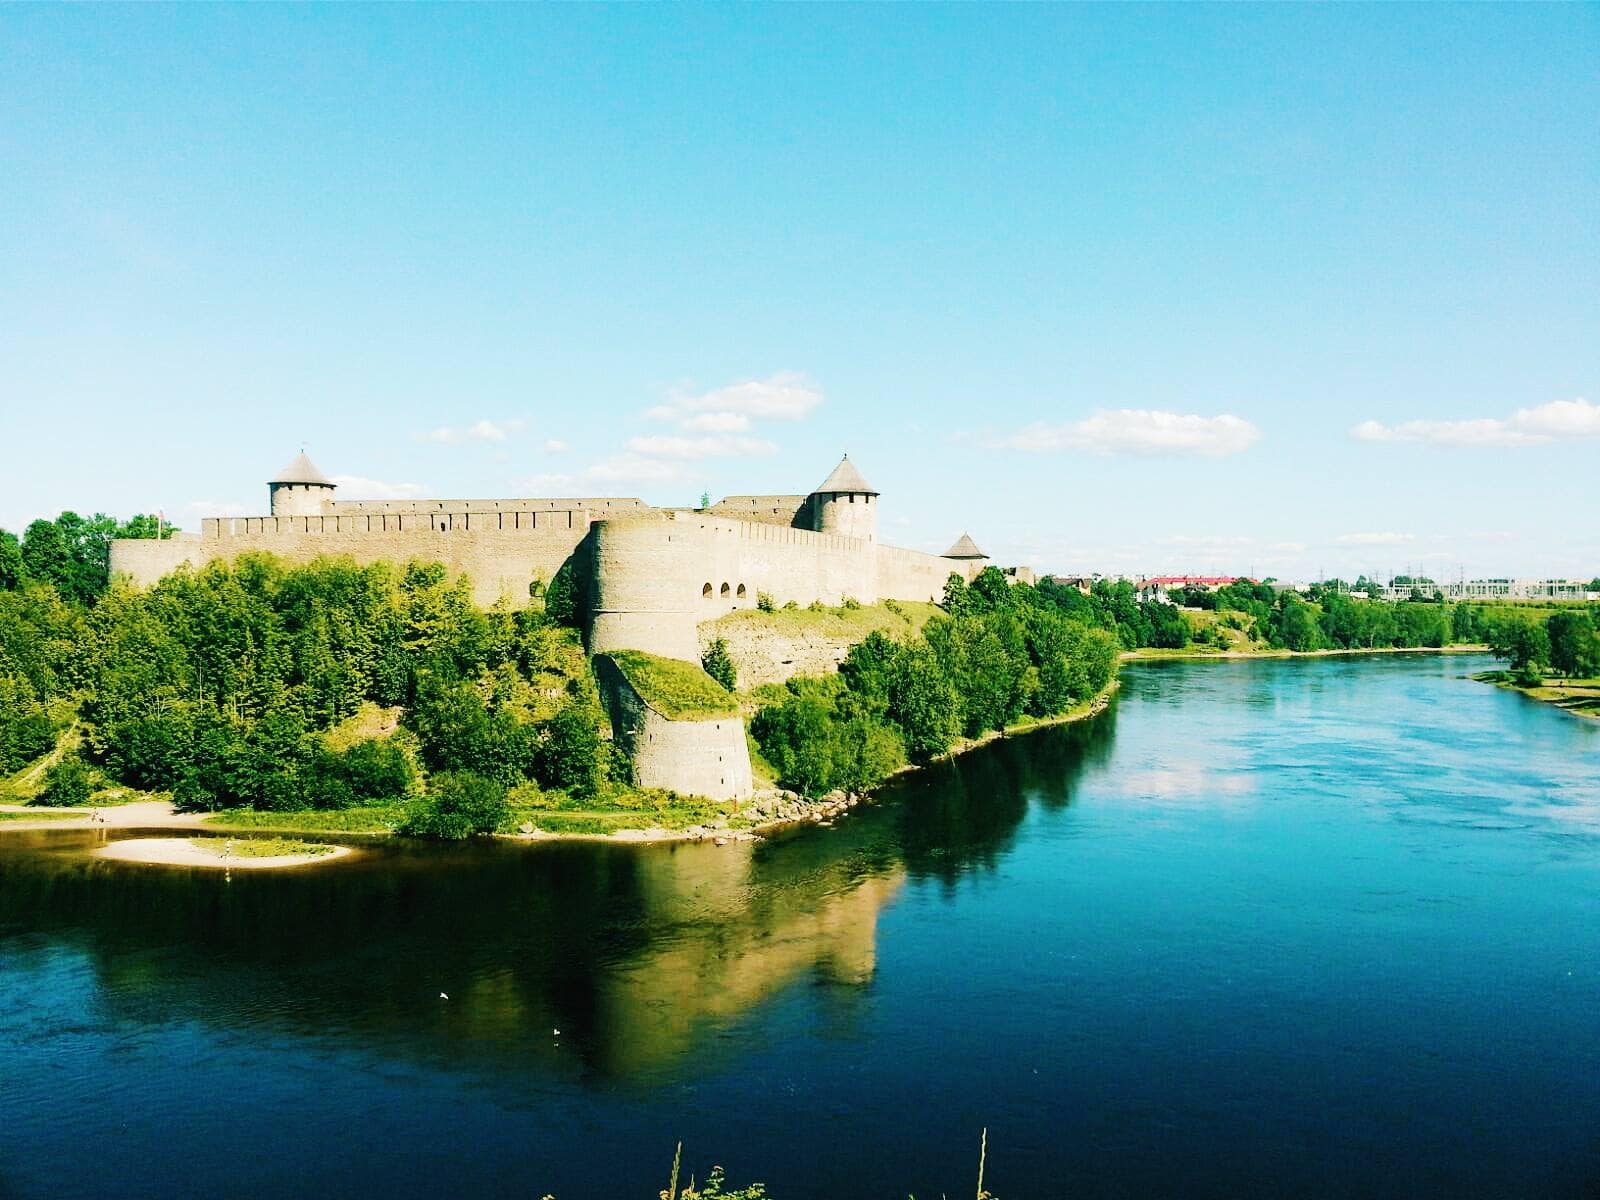 Narva River separating Russia and Estonia